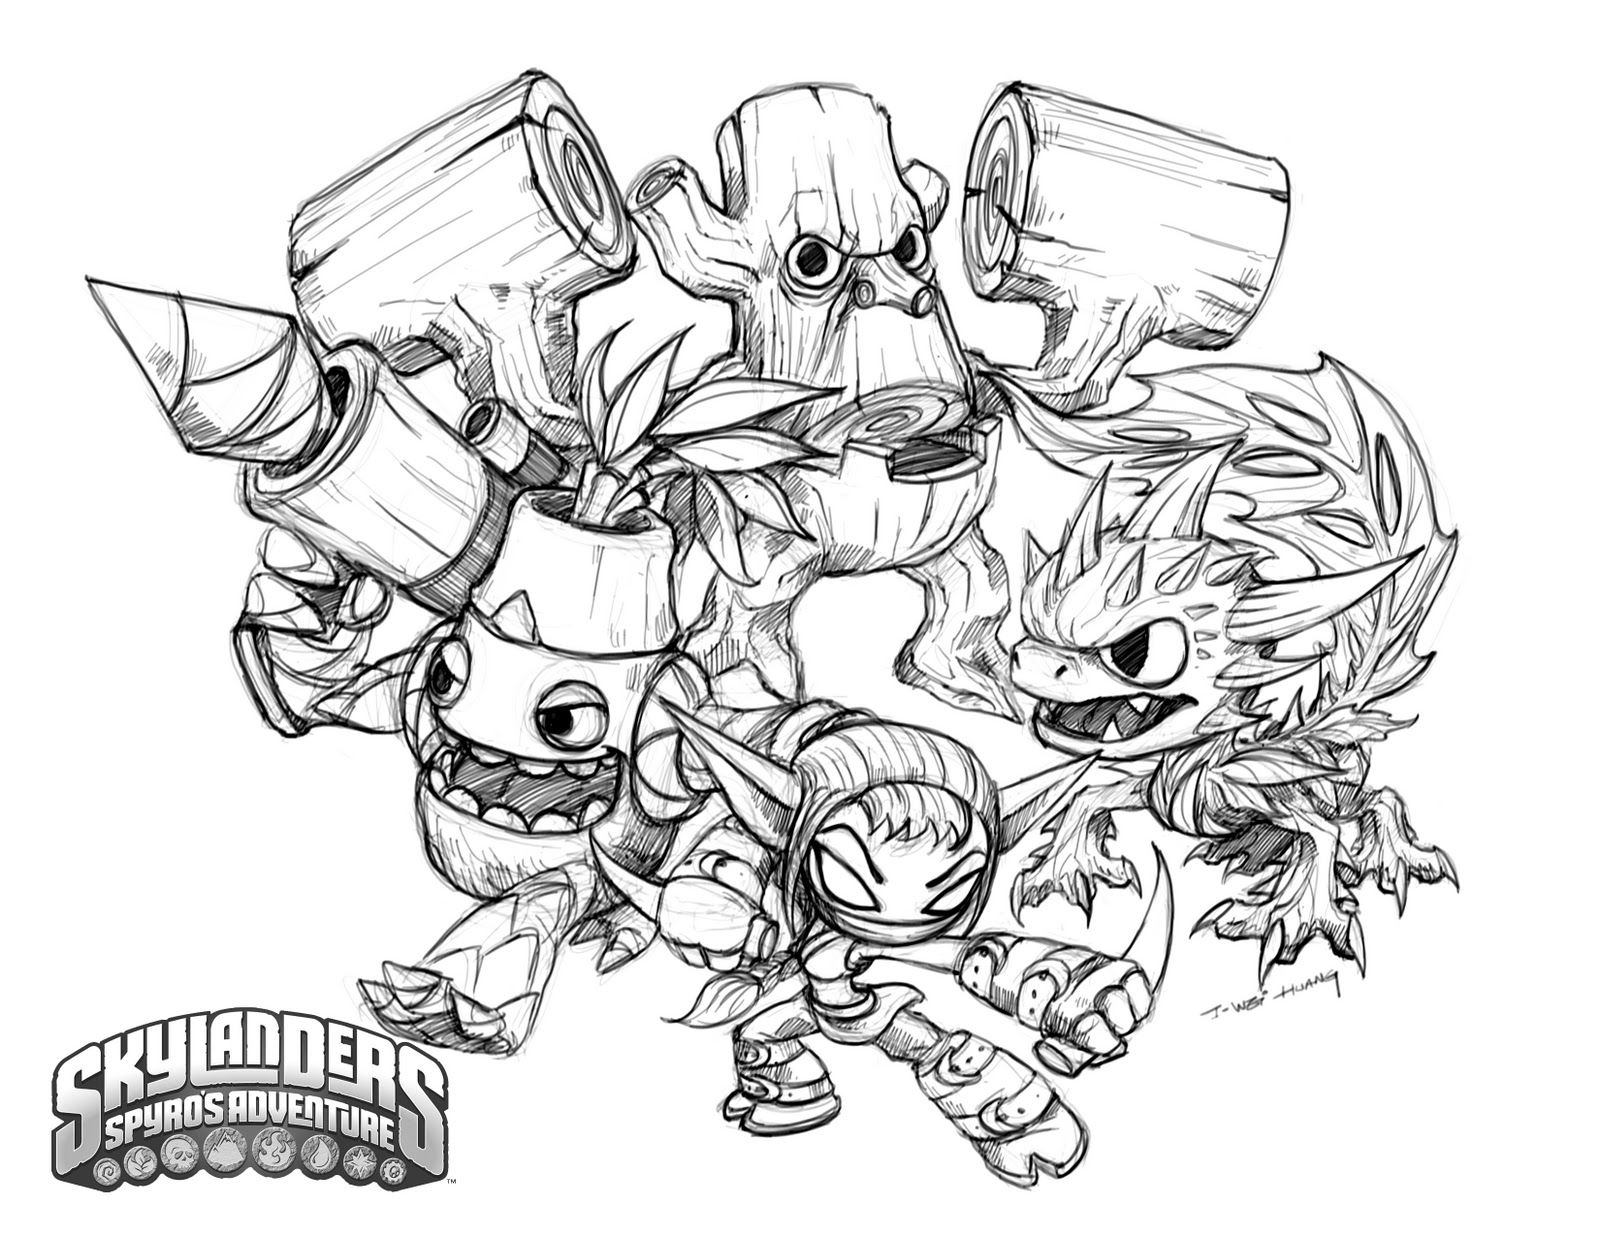 coloring pages from skylanders crabfu blog skylanders speed drawing coloring pages - Skylanders Coloring Pages To Print